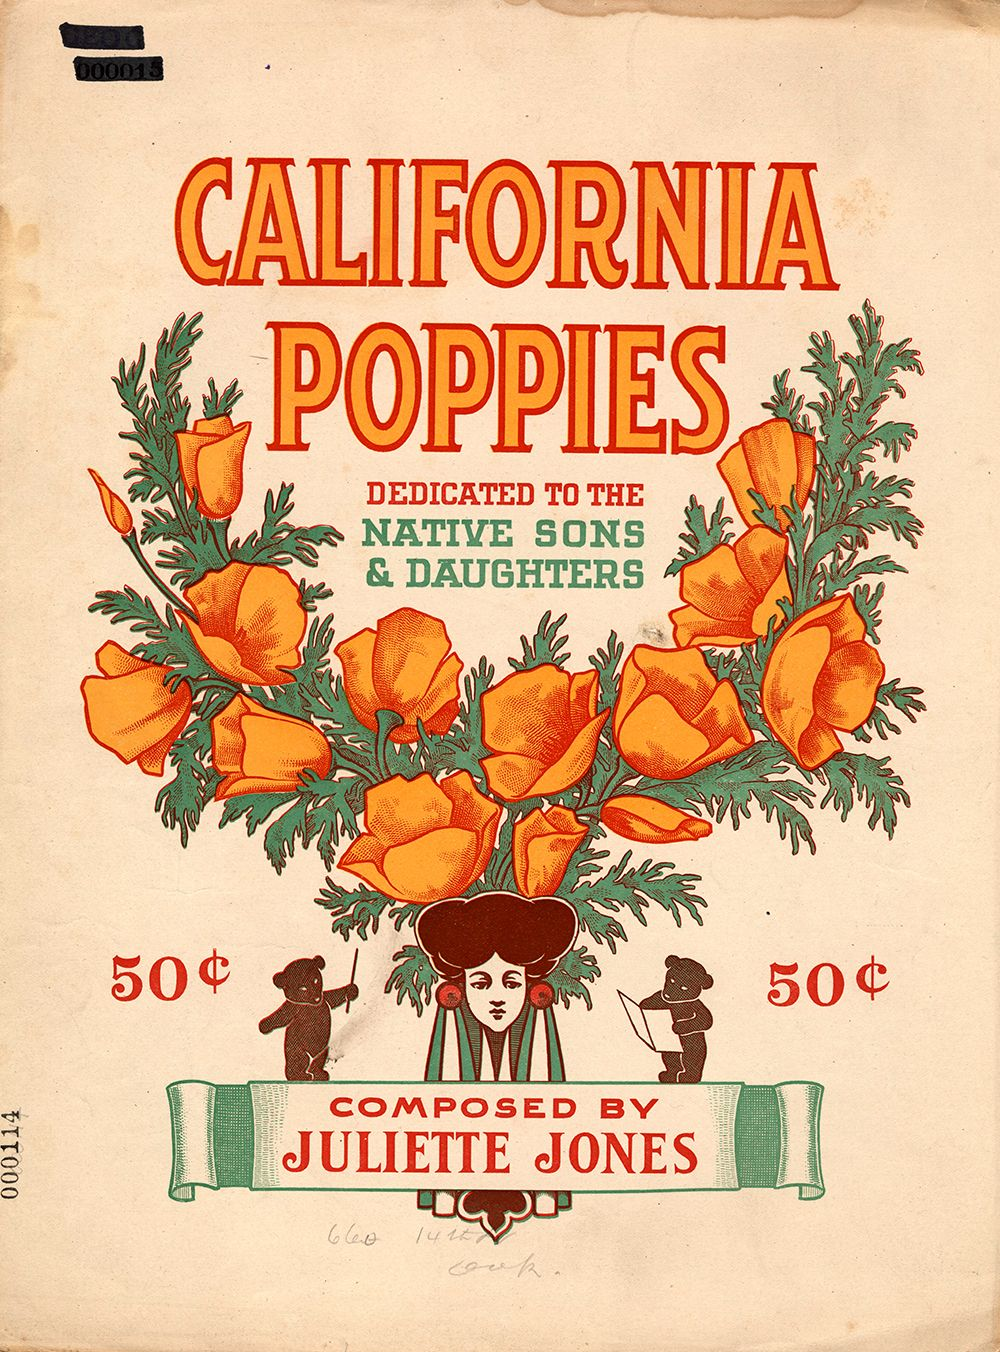 """""""California Poppies: Dedicated to the Native Sons and Daughters"""" composed by Juliette Jones, 1910."""